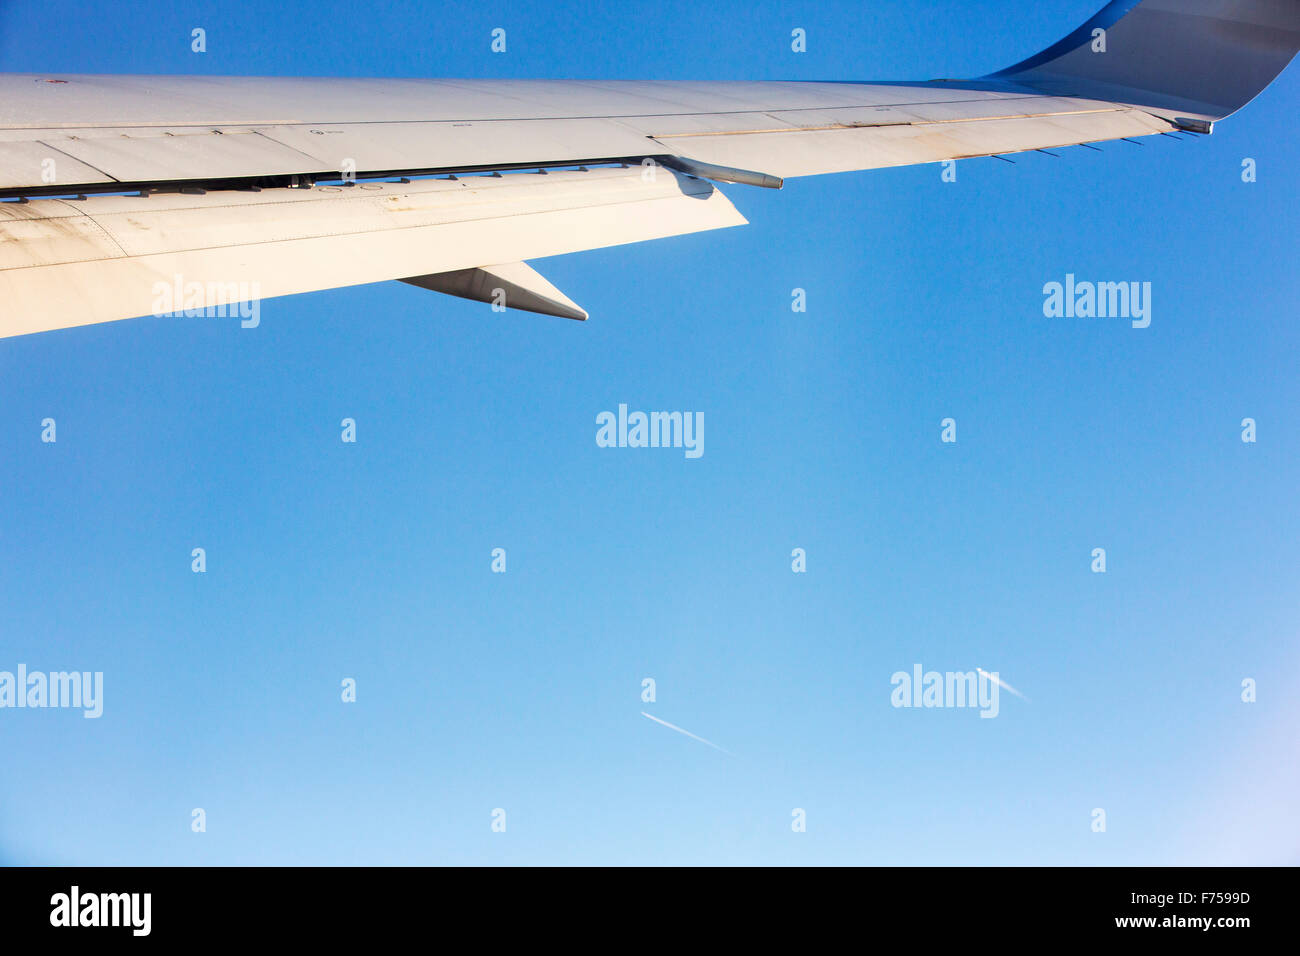 Emissions from airplanes. - Stock Image